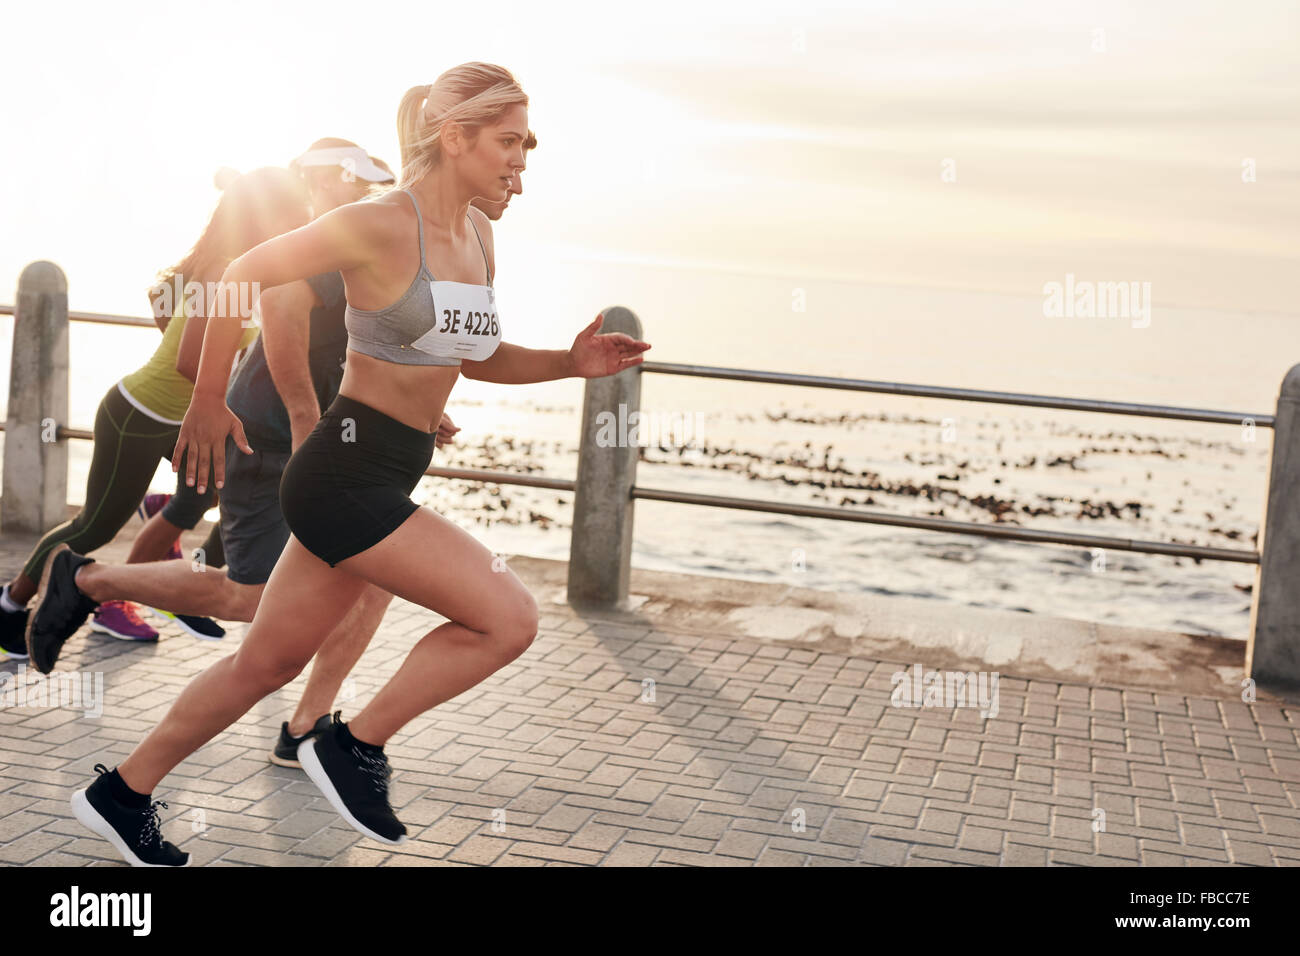 Portrait of young people running on seaside promenade. Group of women running marathon. Stock Photo